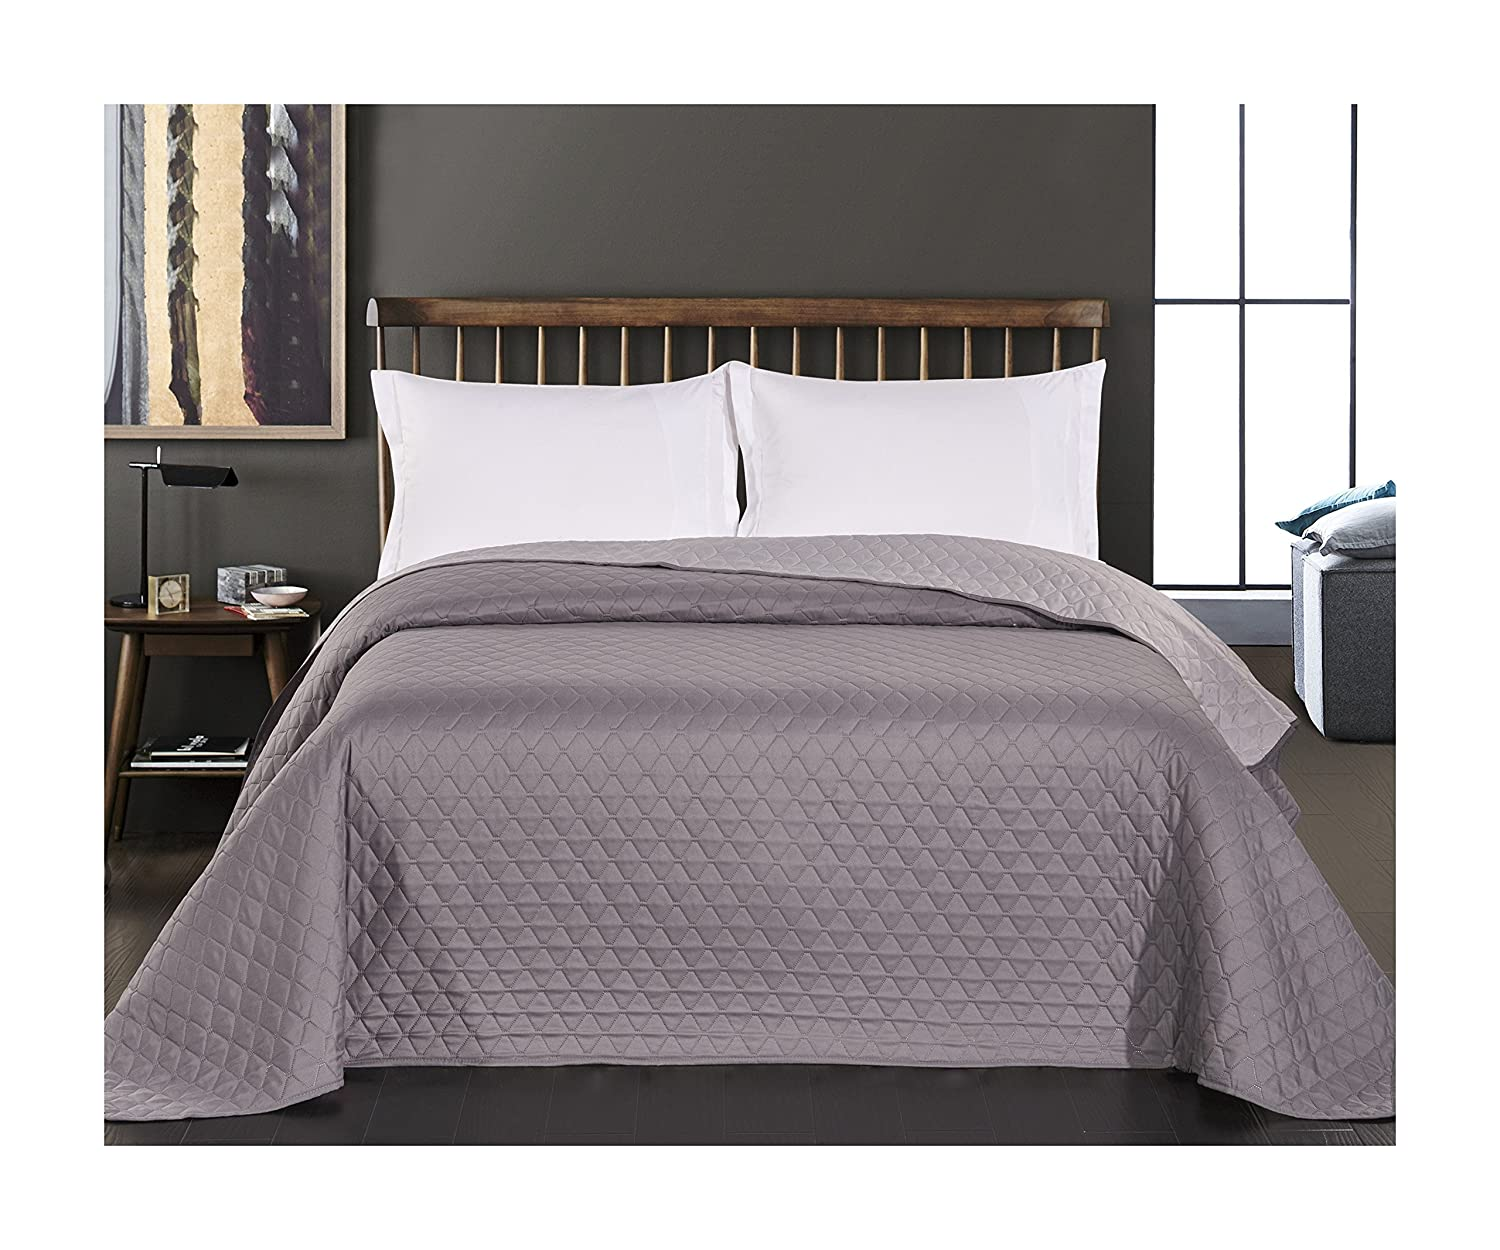 queen king size 220 x 240 cm reversible bedspread quil. Black Bedroom Furniture Sets. Home Design Ideas